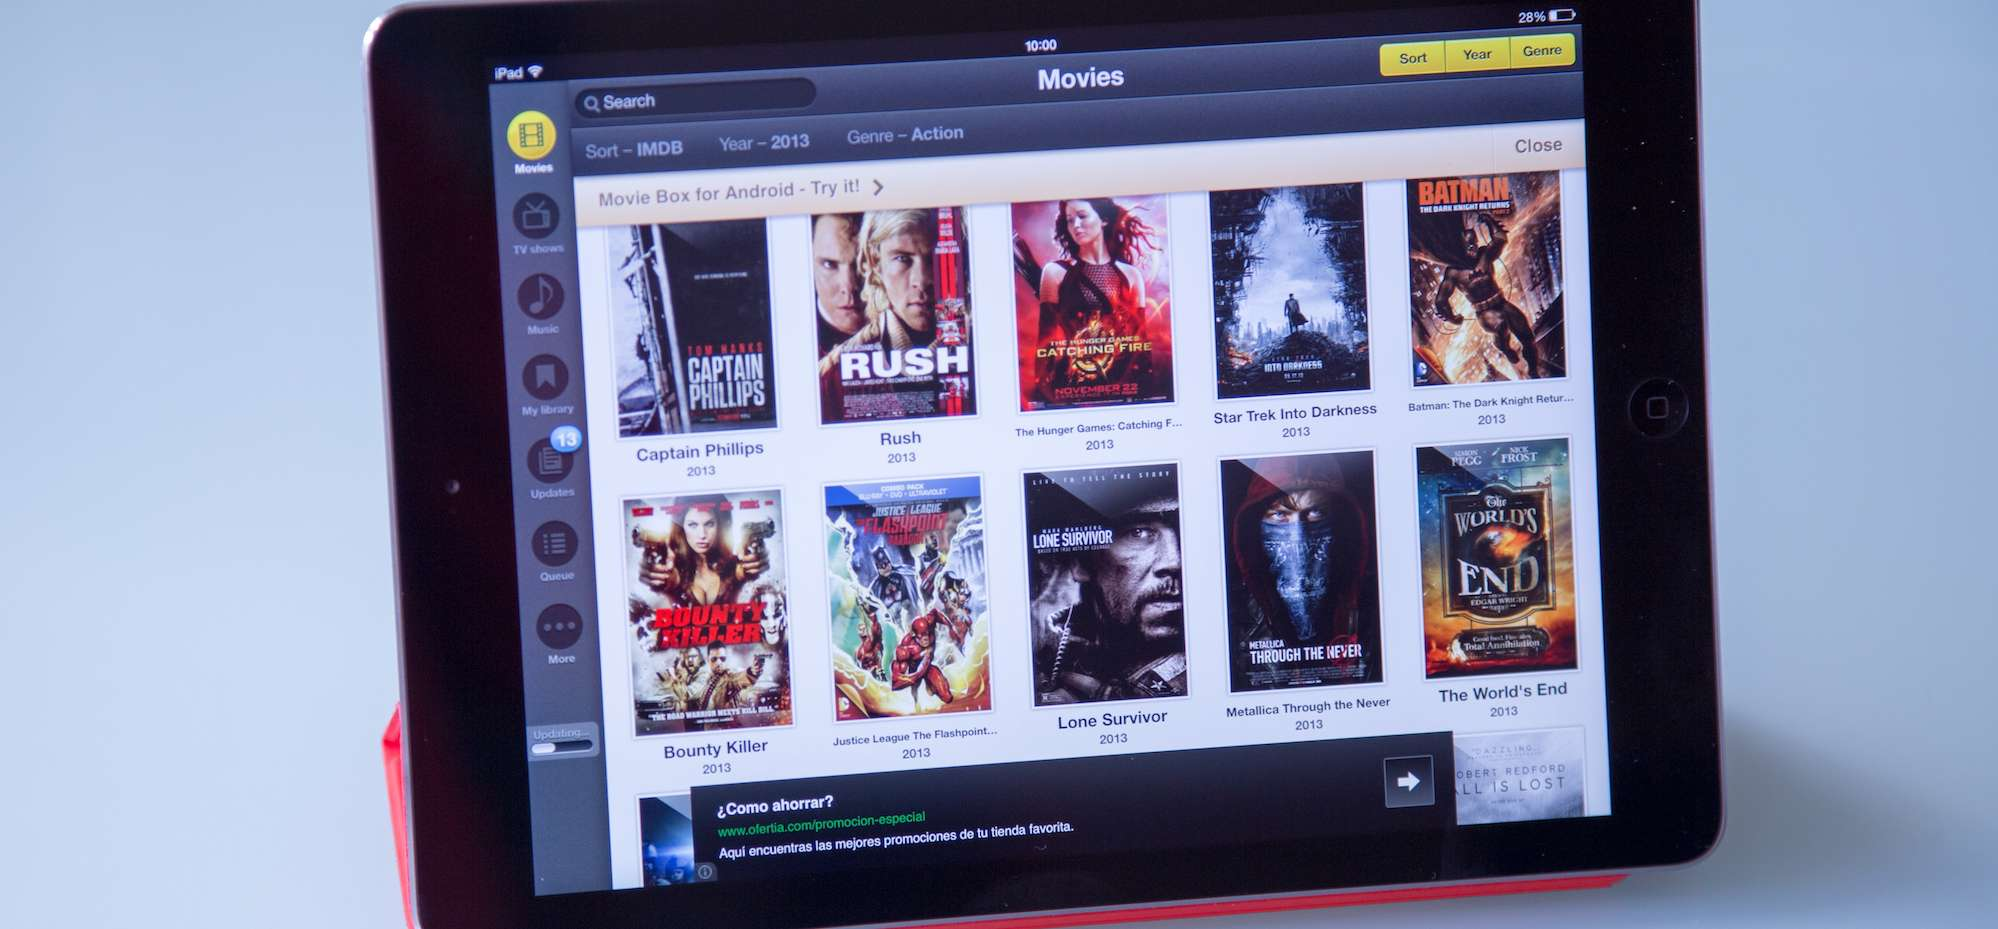 Latest added movies on Showbox